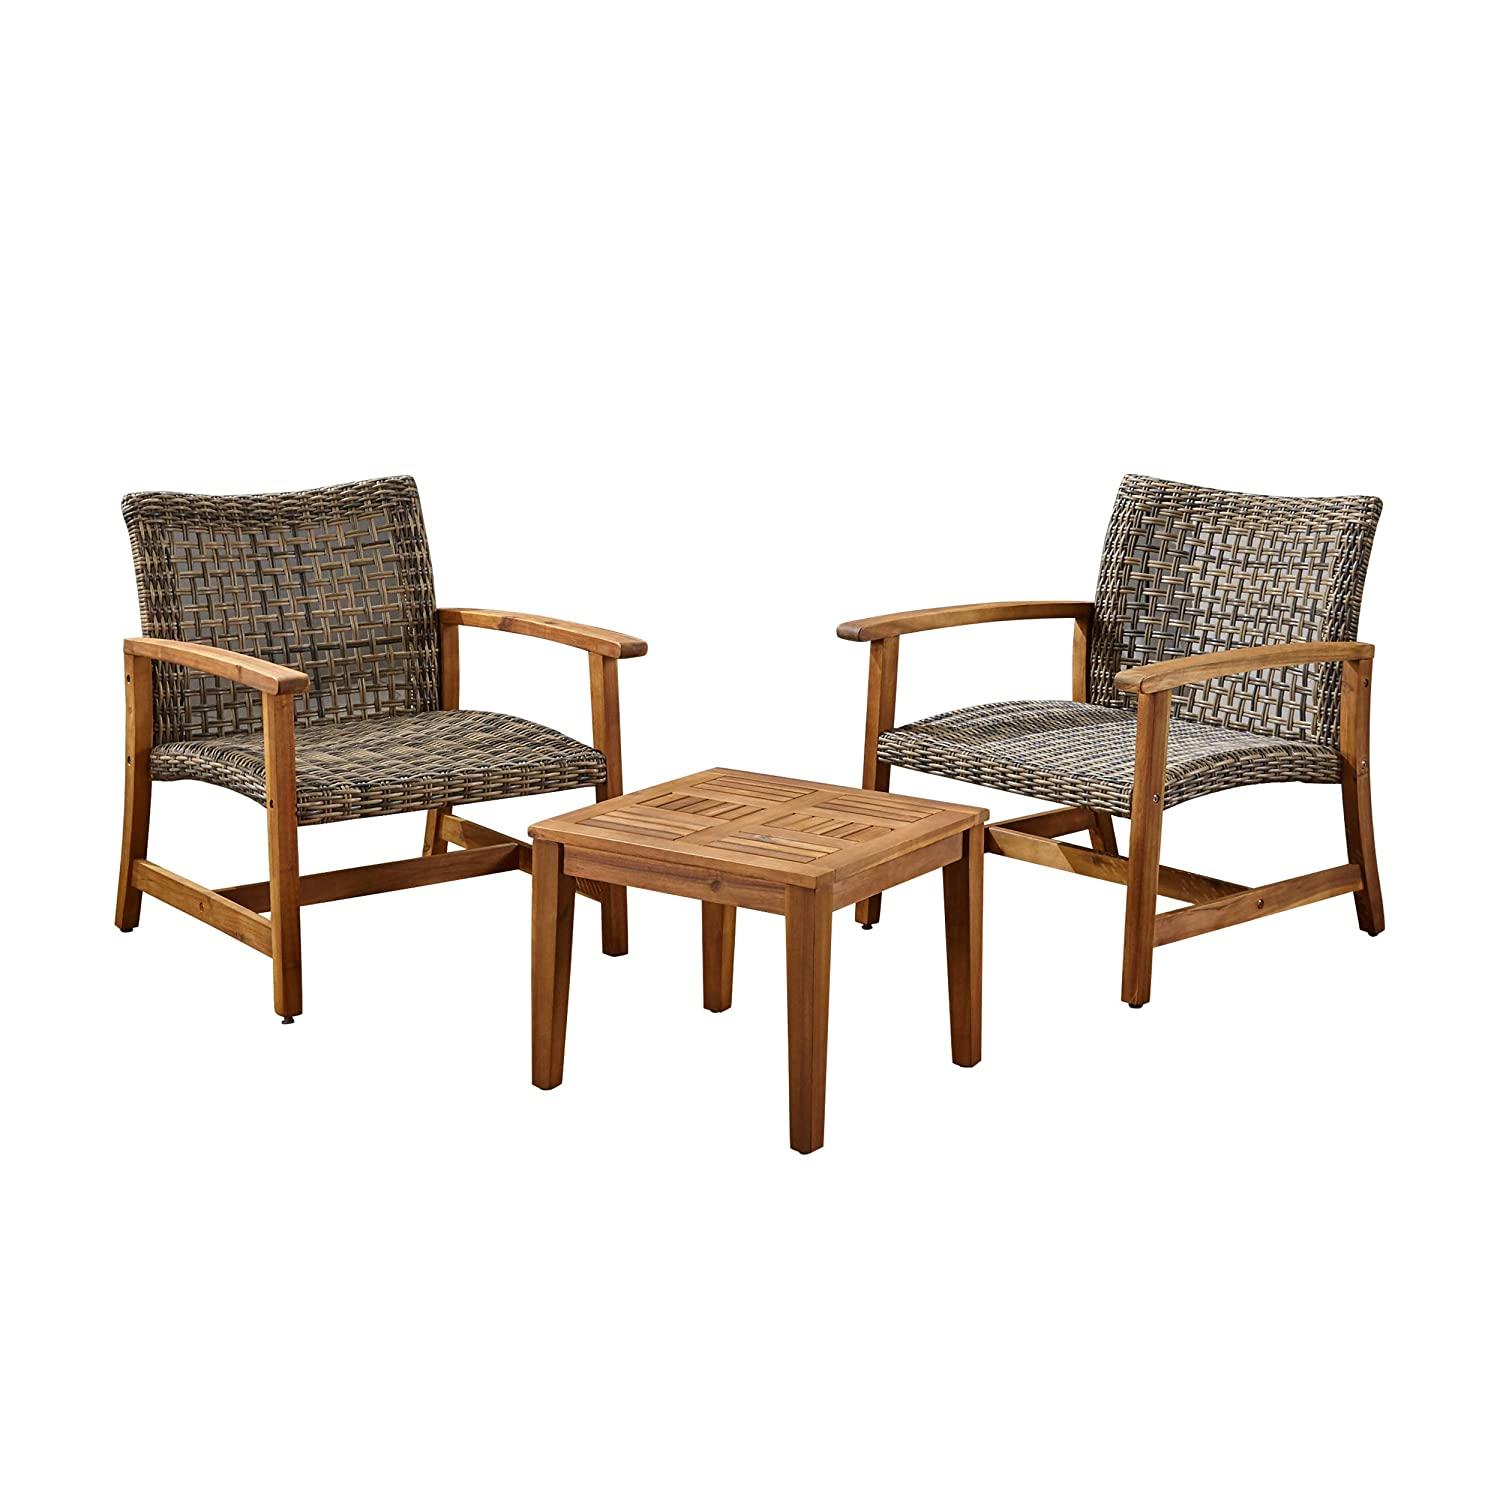 Great Deal Furniture Alyssa Outdoor 3 Piece Wood and Wicker Club Chairs and Side Table Set, Gray